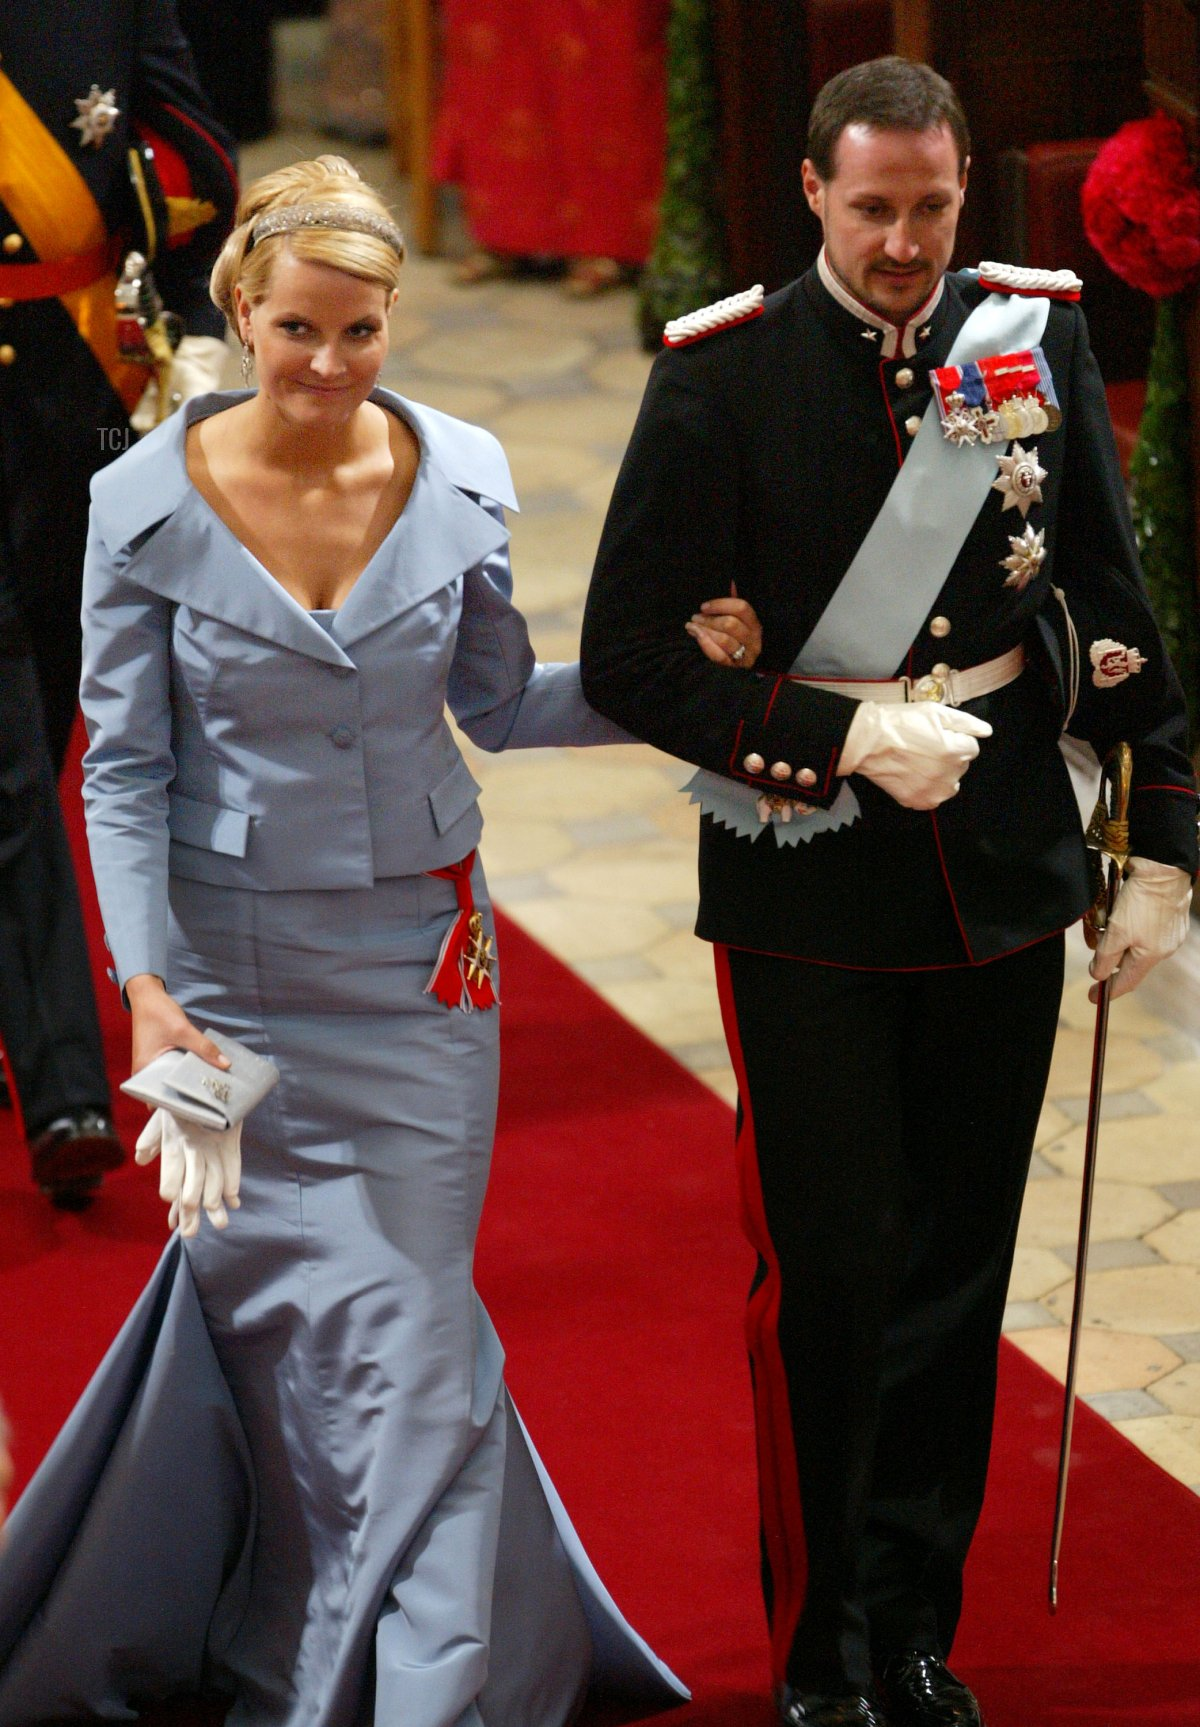 Crown Prince Haakon and his wife Crown Princess Mette-Marit of Norway arrive to attend the wedding between Danish Crown Prince Frederik and Miss Mary Elizabeth Donaldson in Copenhagen Cathedral May 14, 2004